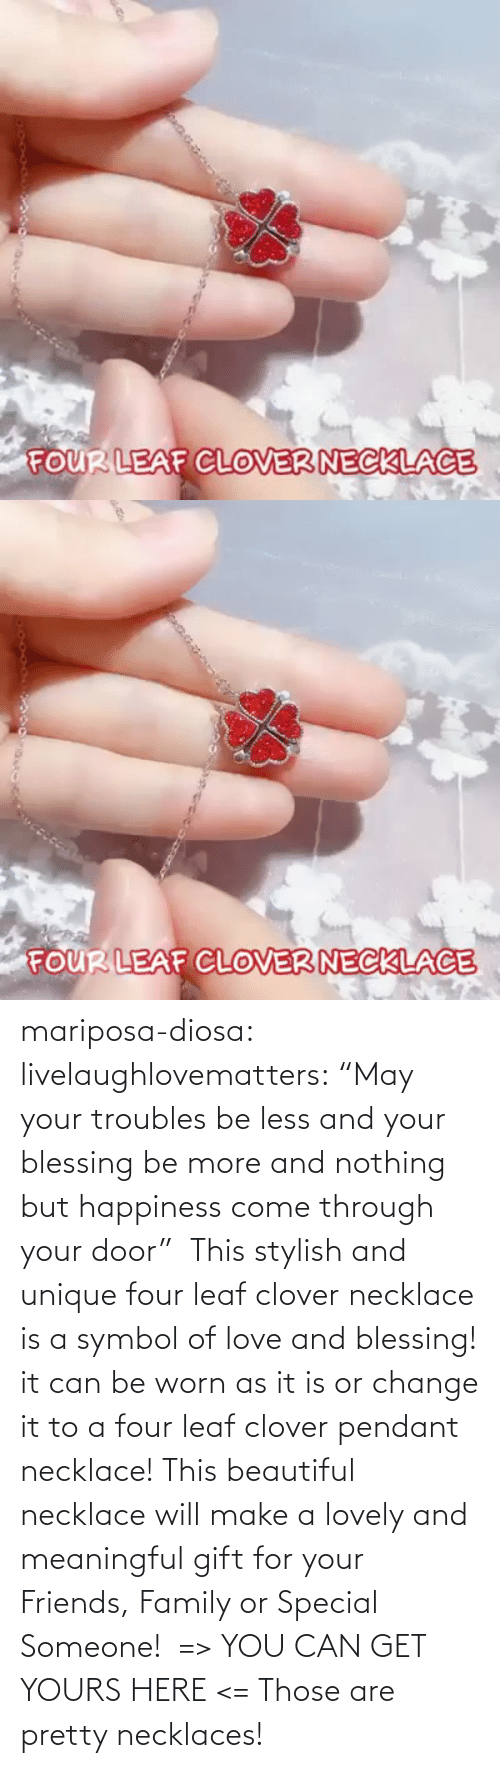 "Meaningful: mariposa-diosa: livelaughlovematters:  ""May your troubles be less and your blessing be more and nothing but happiness come through your door""  This stylish and unique four leaf clover necklace is a symbol of love and blessing! it can be worn as it is or change it to a four leaf clover pendant necklace! This beautiful necklace will make a lovely and meaningful gift for your Friends, Family or Special Someone!  => YOU CAN GET YOURS HERE <=    Those are pretty necklaces!"